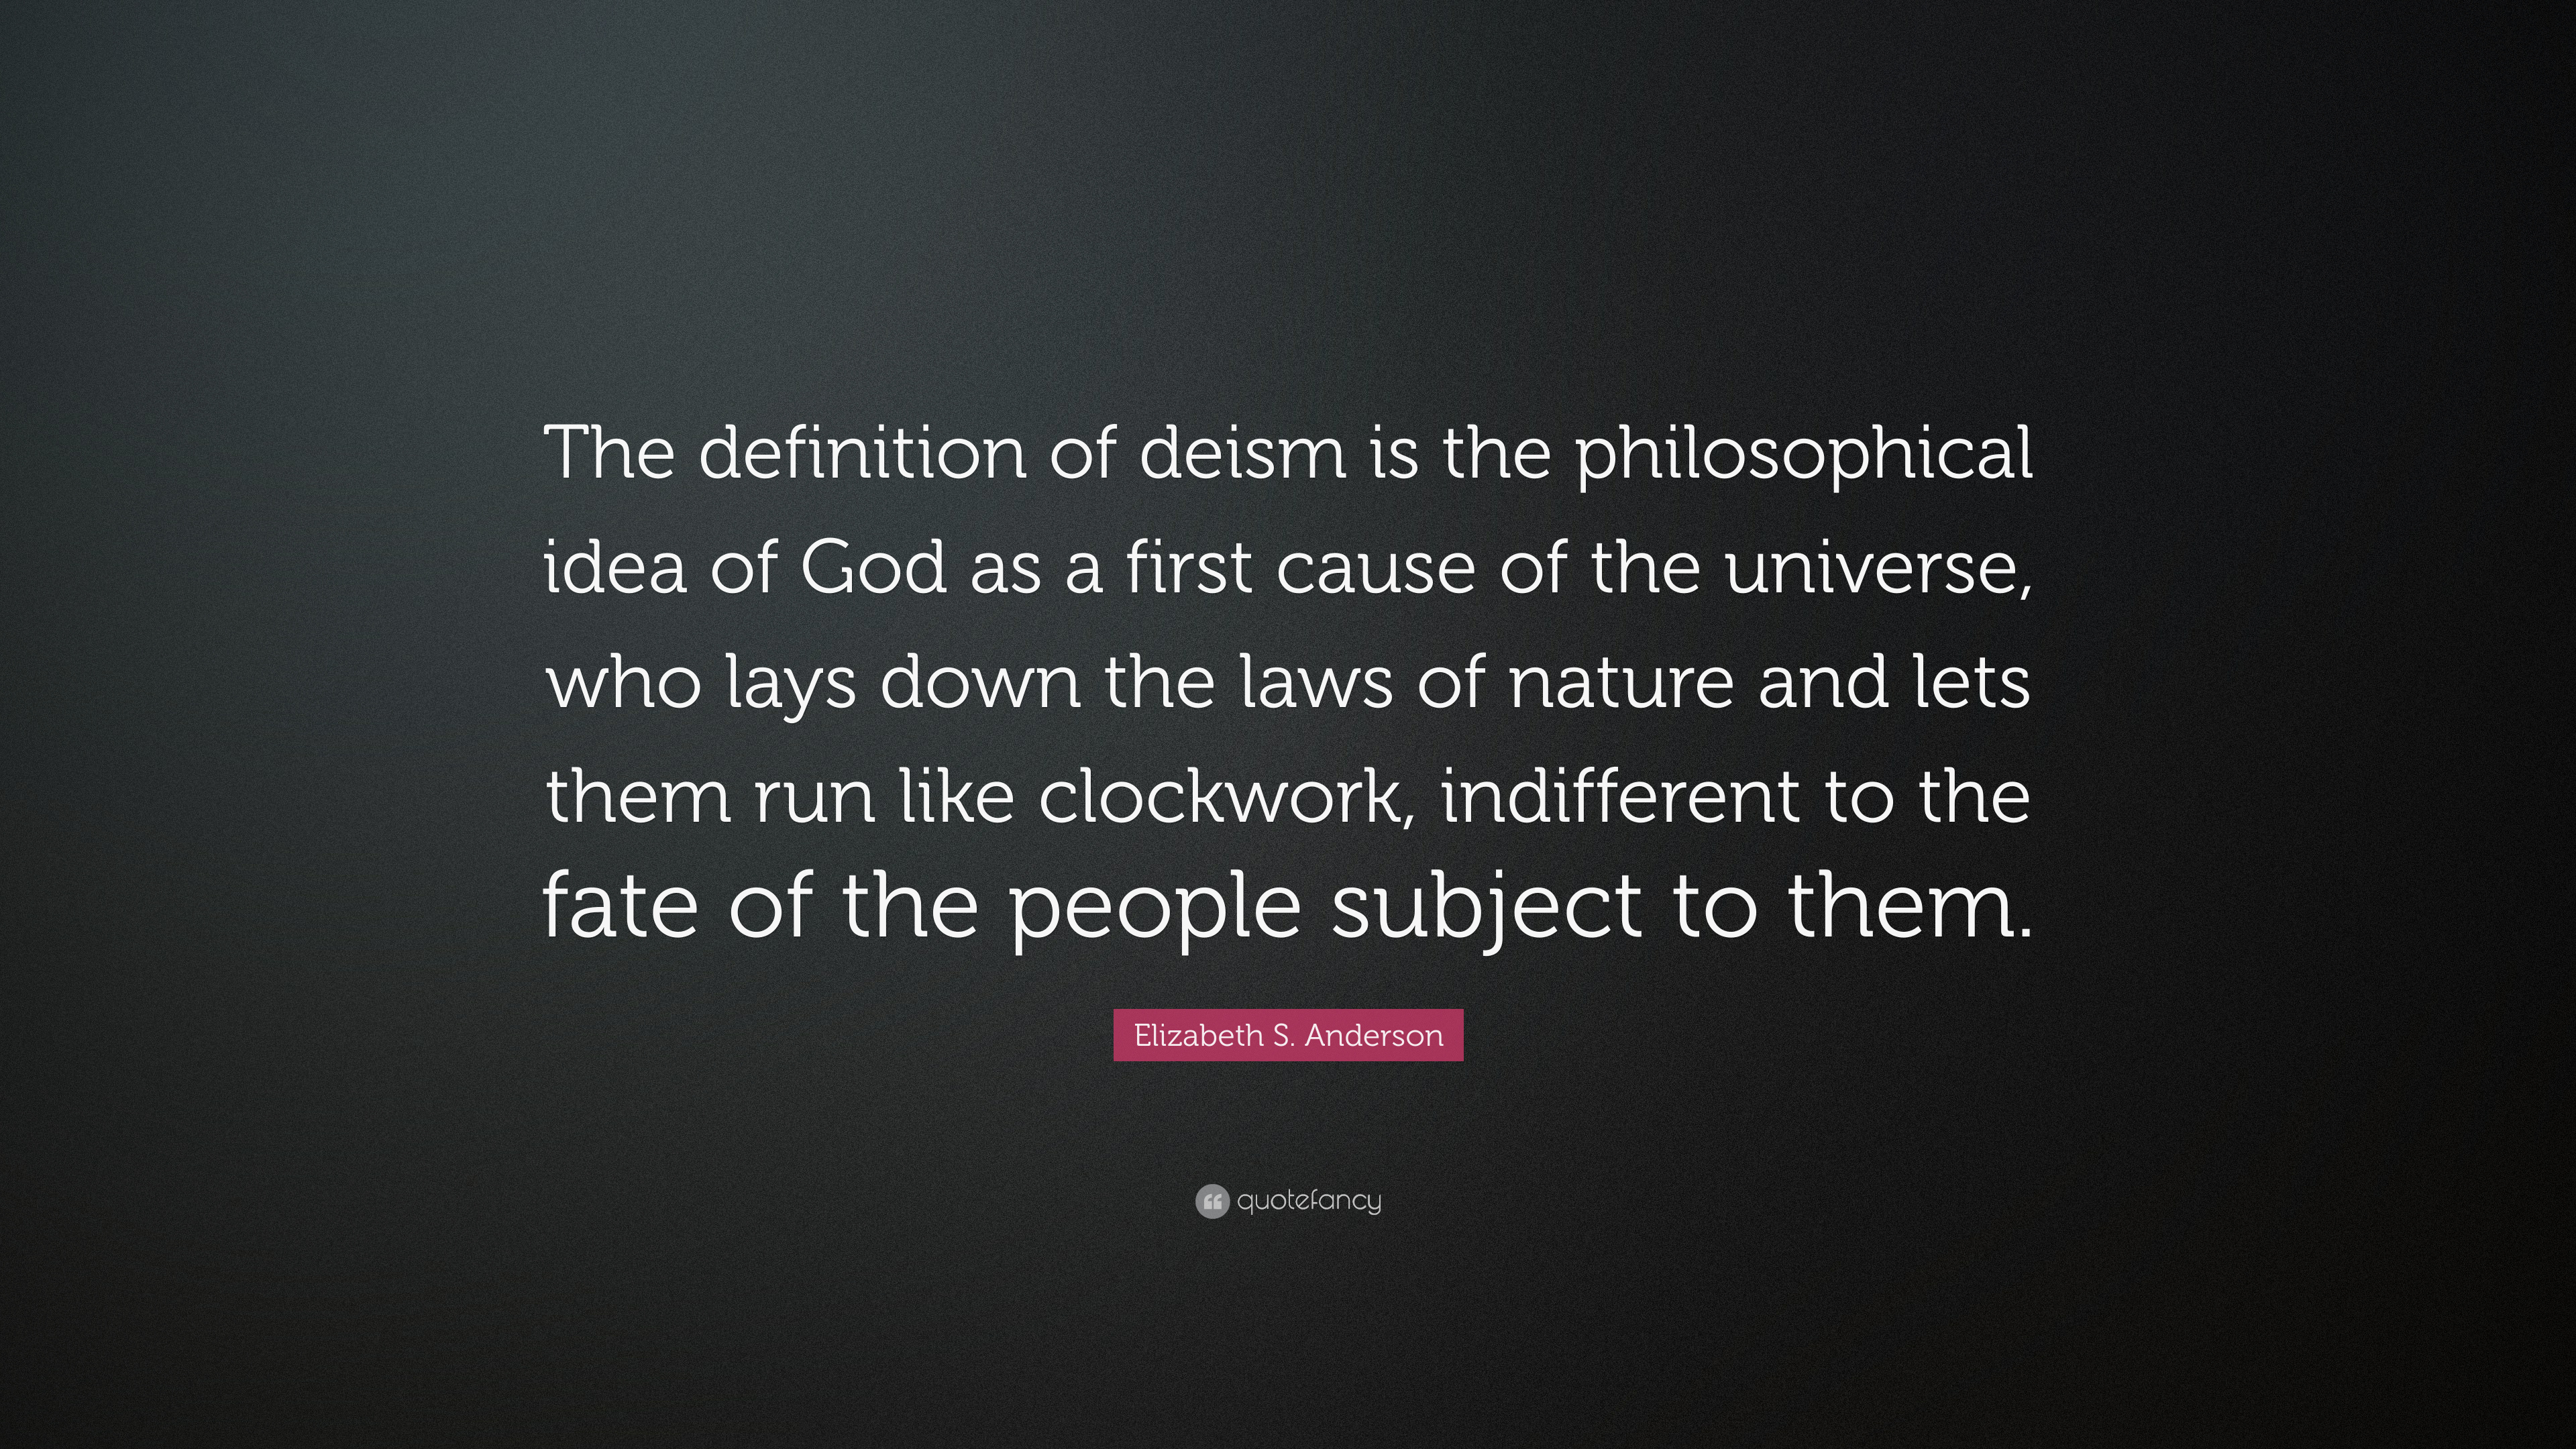 Great Elizabeth S. Anderson Quote: U201cThe Definition Of Deism Is The Philosophical  Idea Of